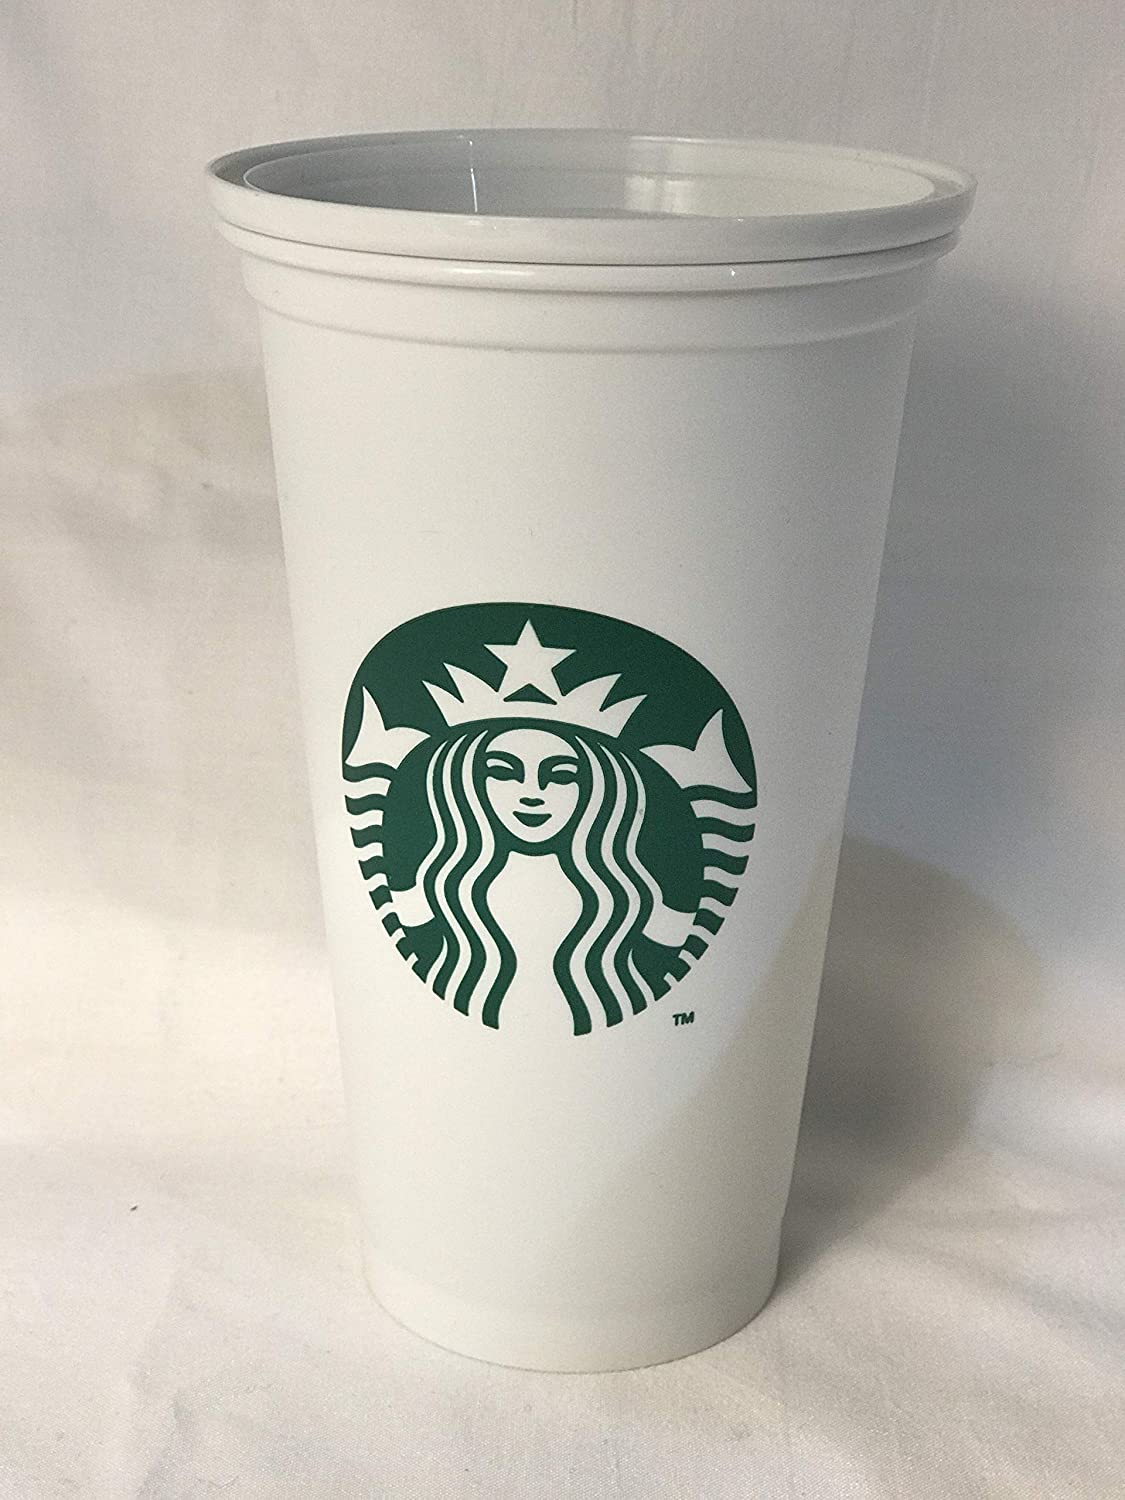 Starbucks Reusable Travel Cup To Go Coffee Cup (Grande 16 Oz)